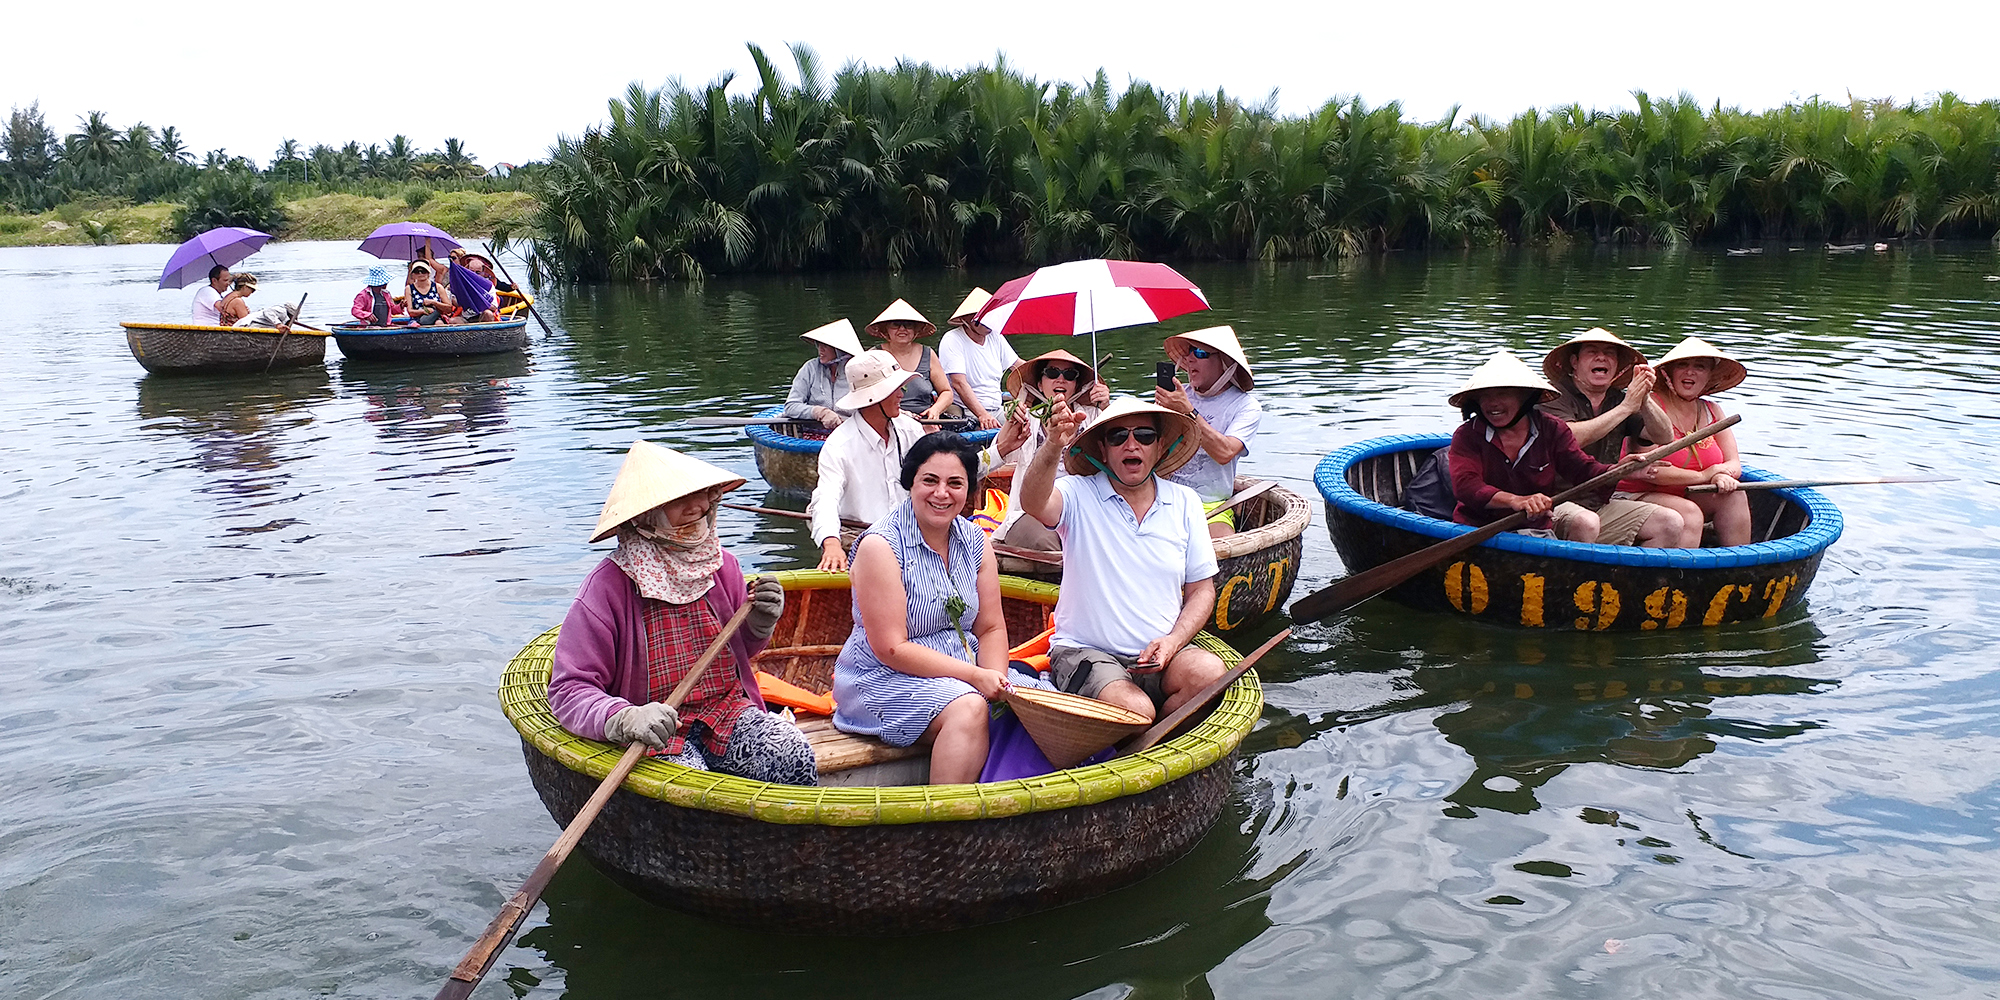 2. Basket Boat, Fishing and Cooking Experience